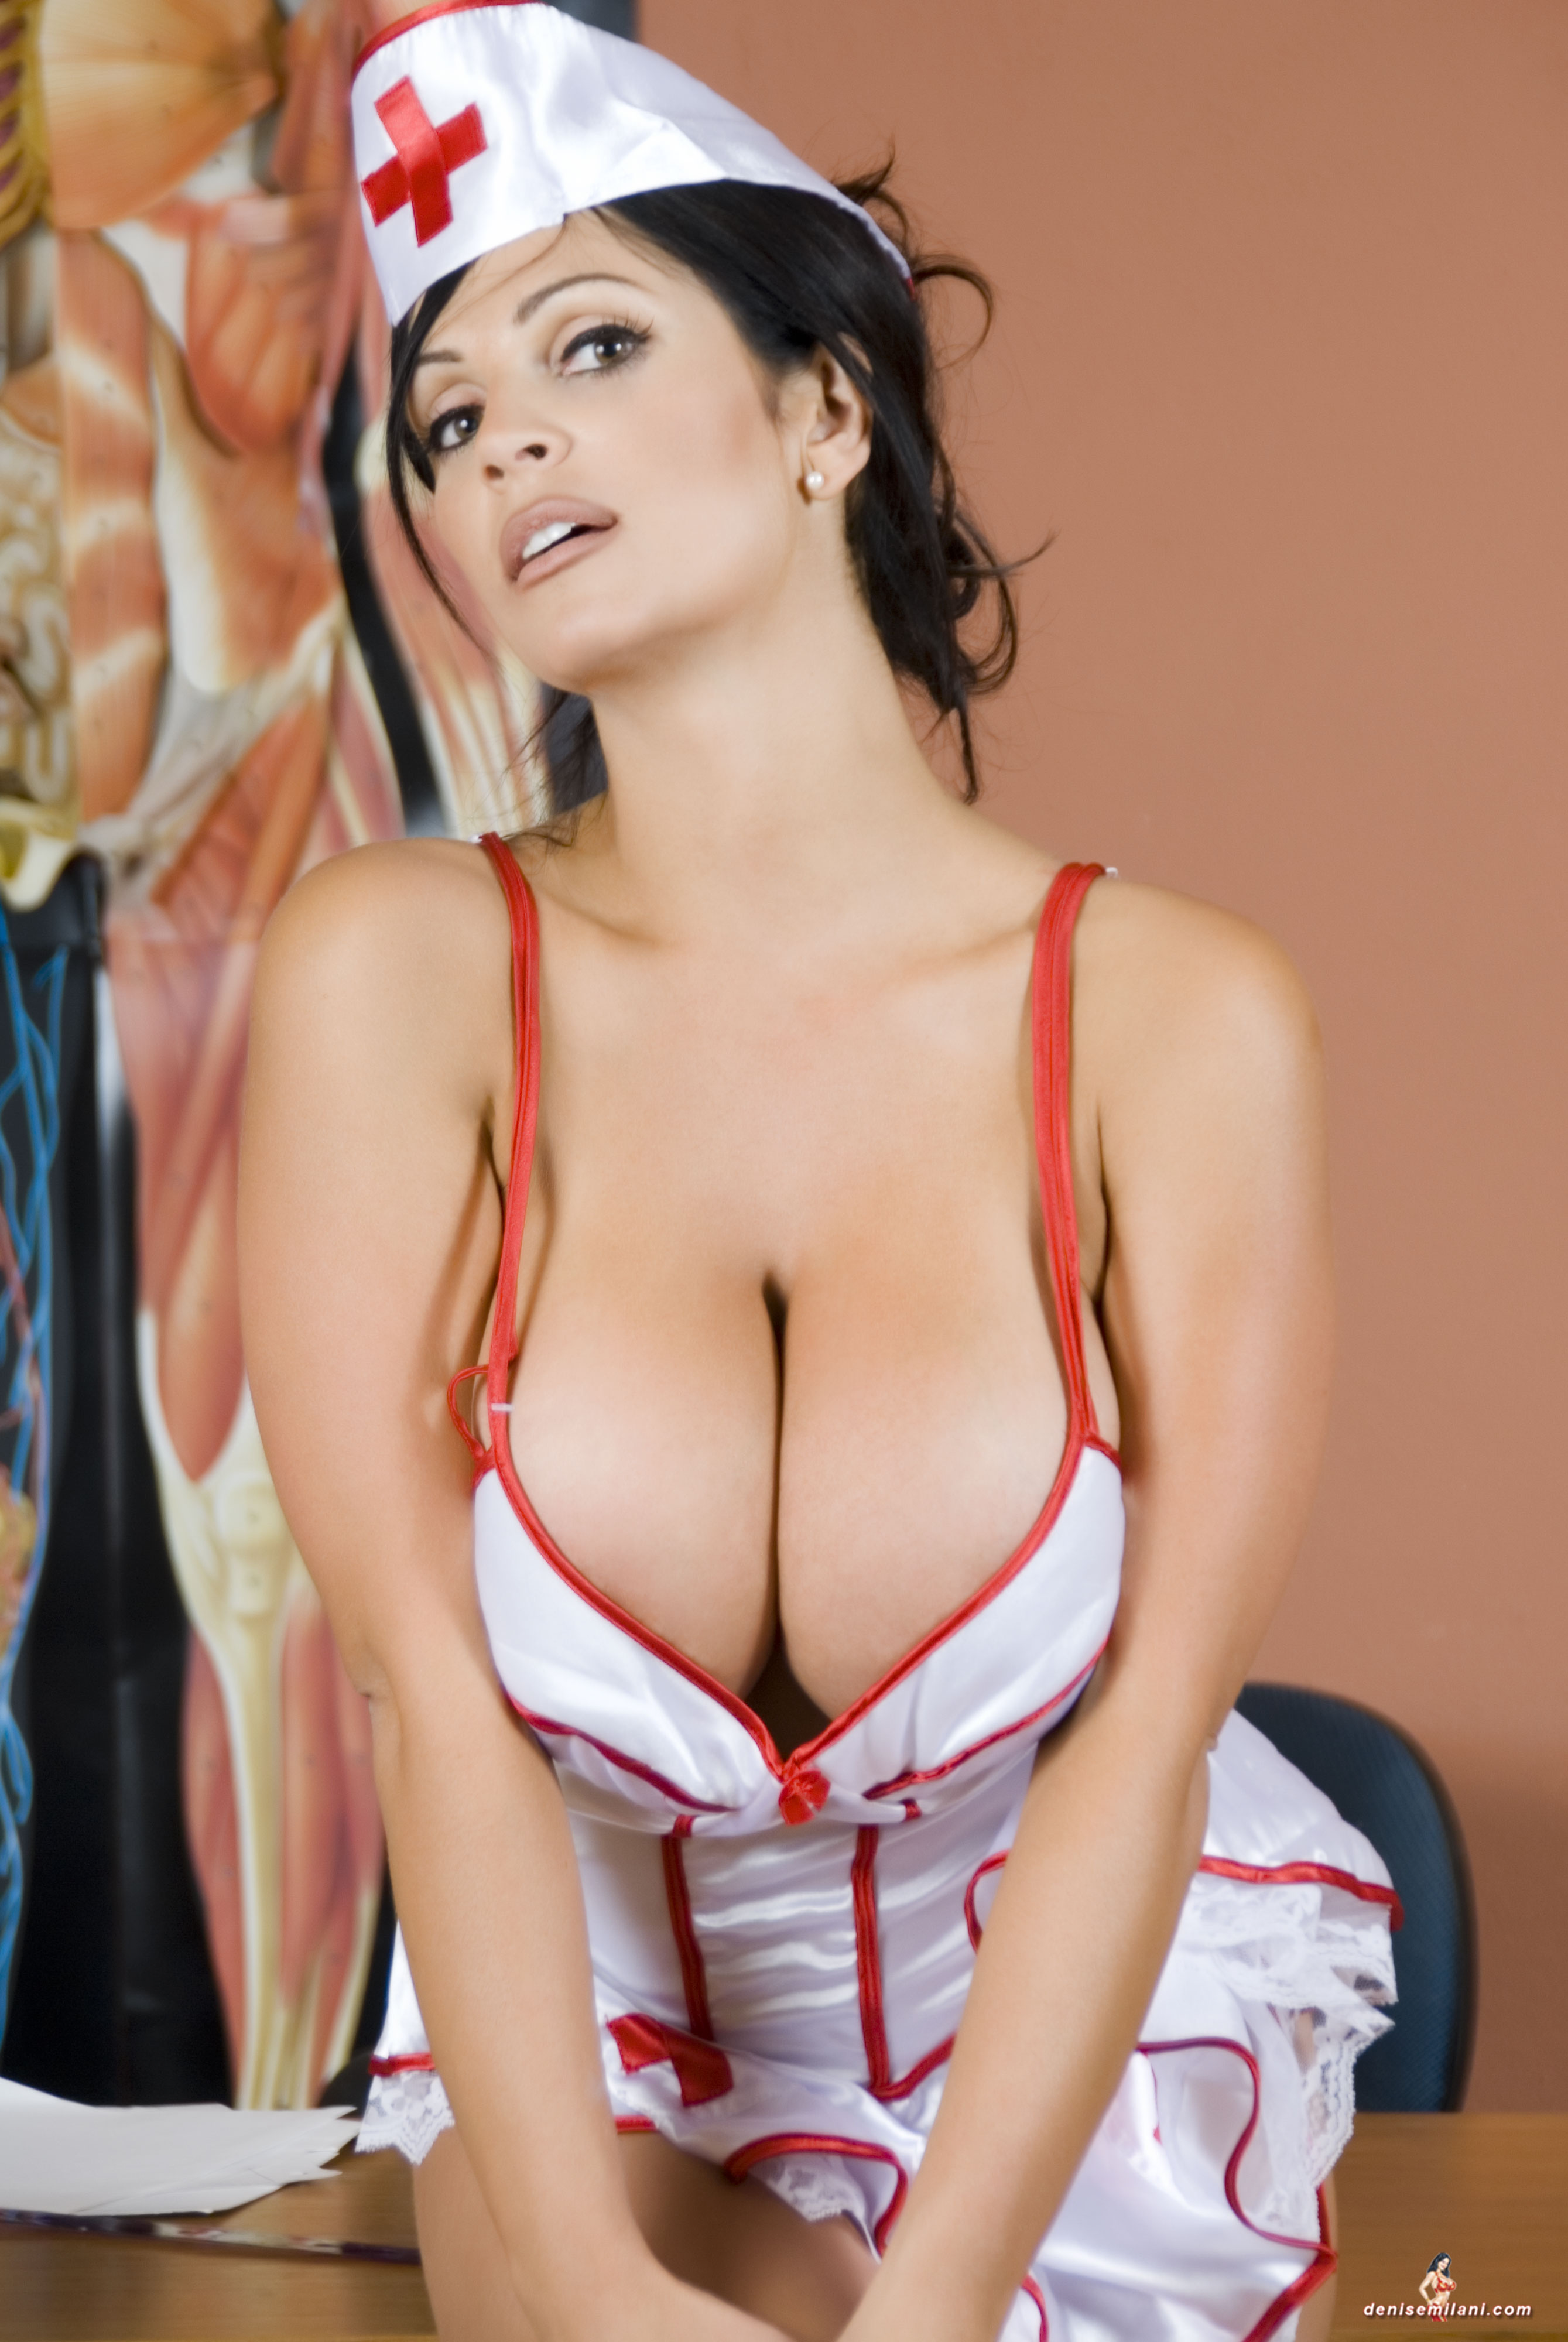 naughty nurse halloween costumes